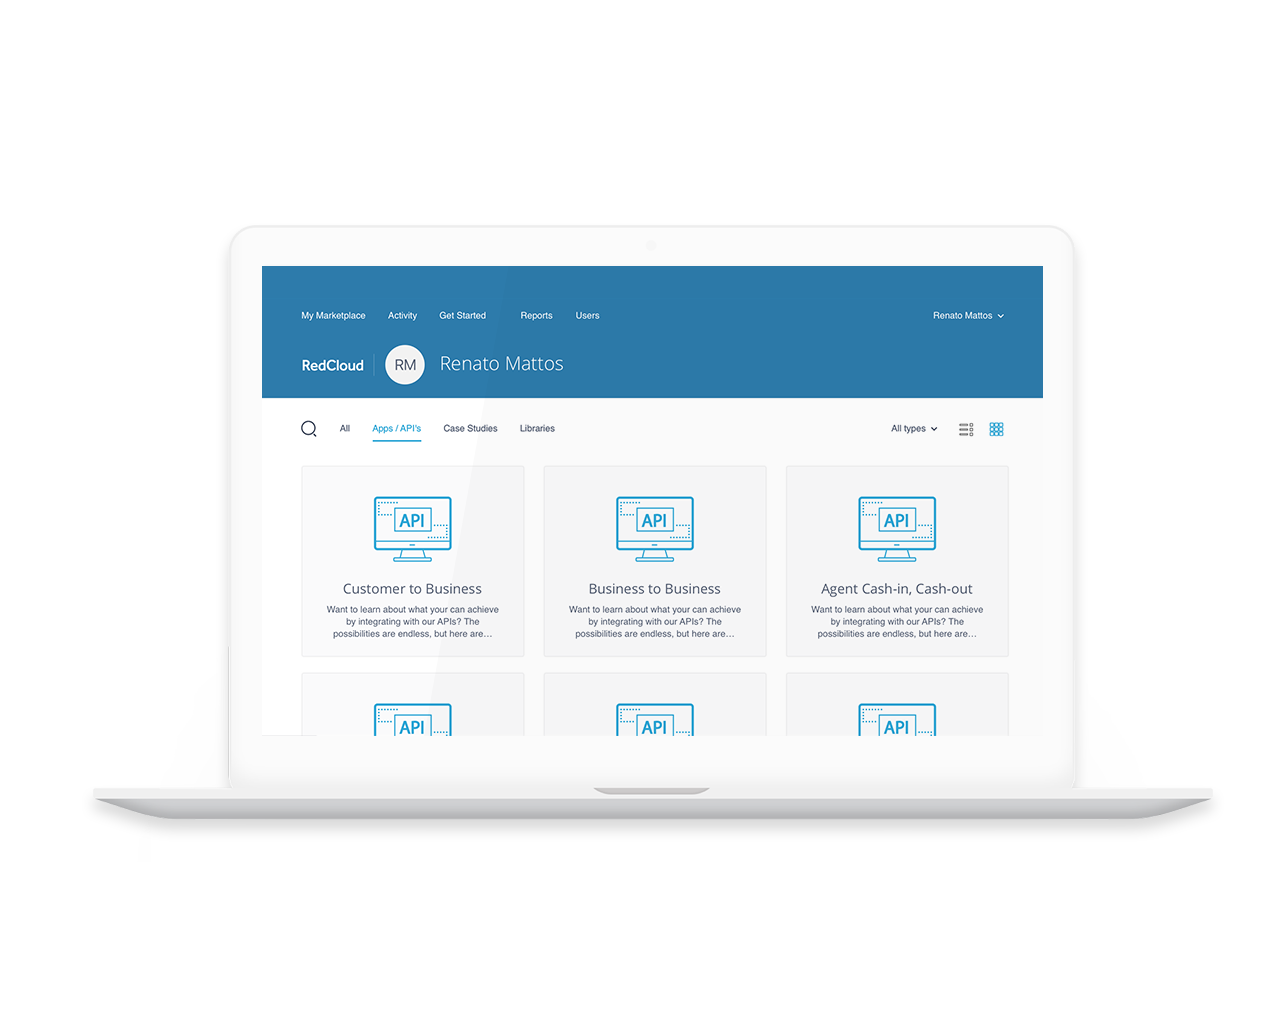 Smart Integration Module - Upgradeable technology through secure open API integrationsFast, seamless and cost-effective integration with third-parties